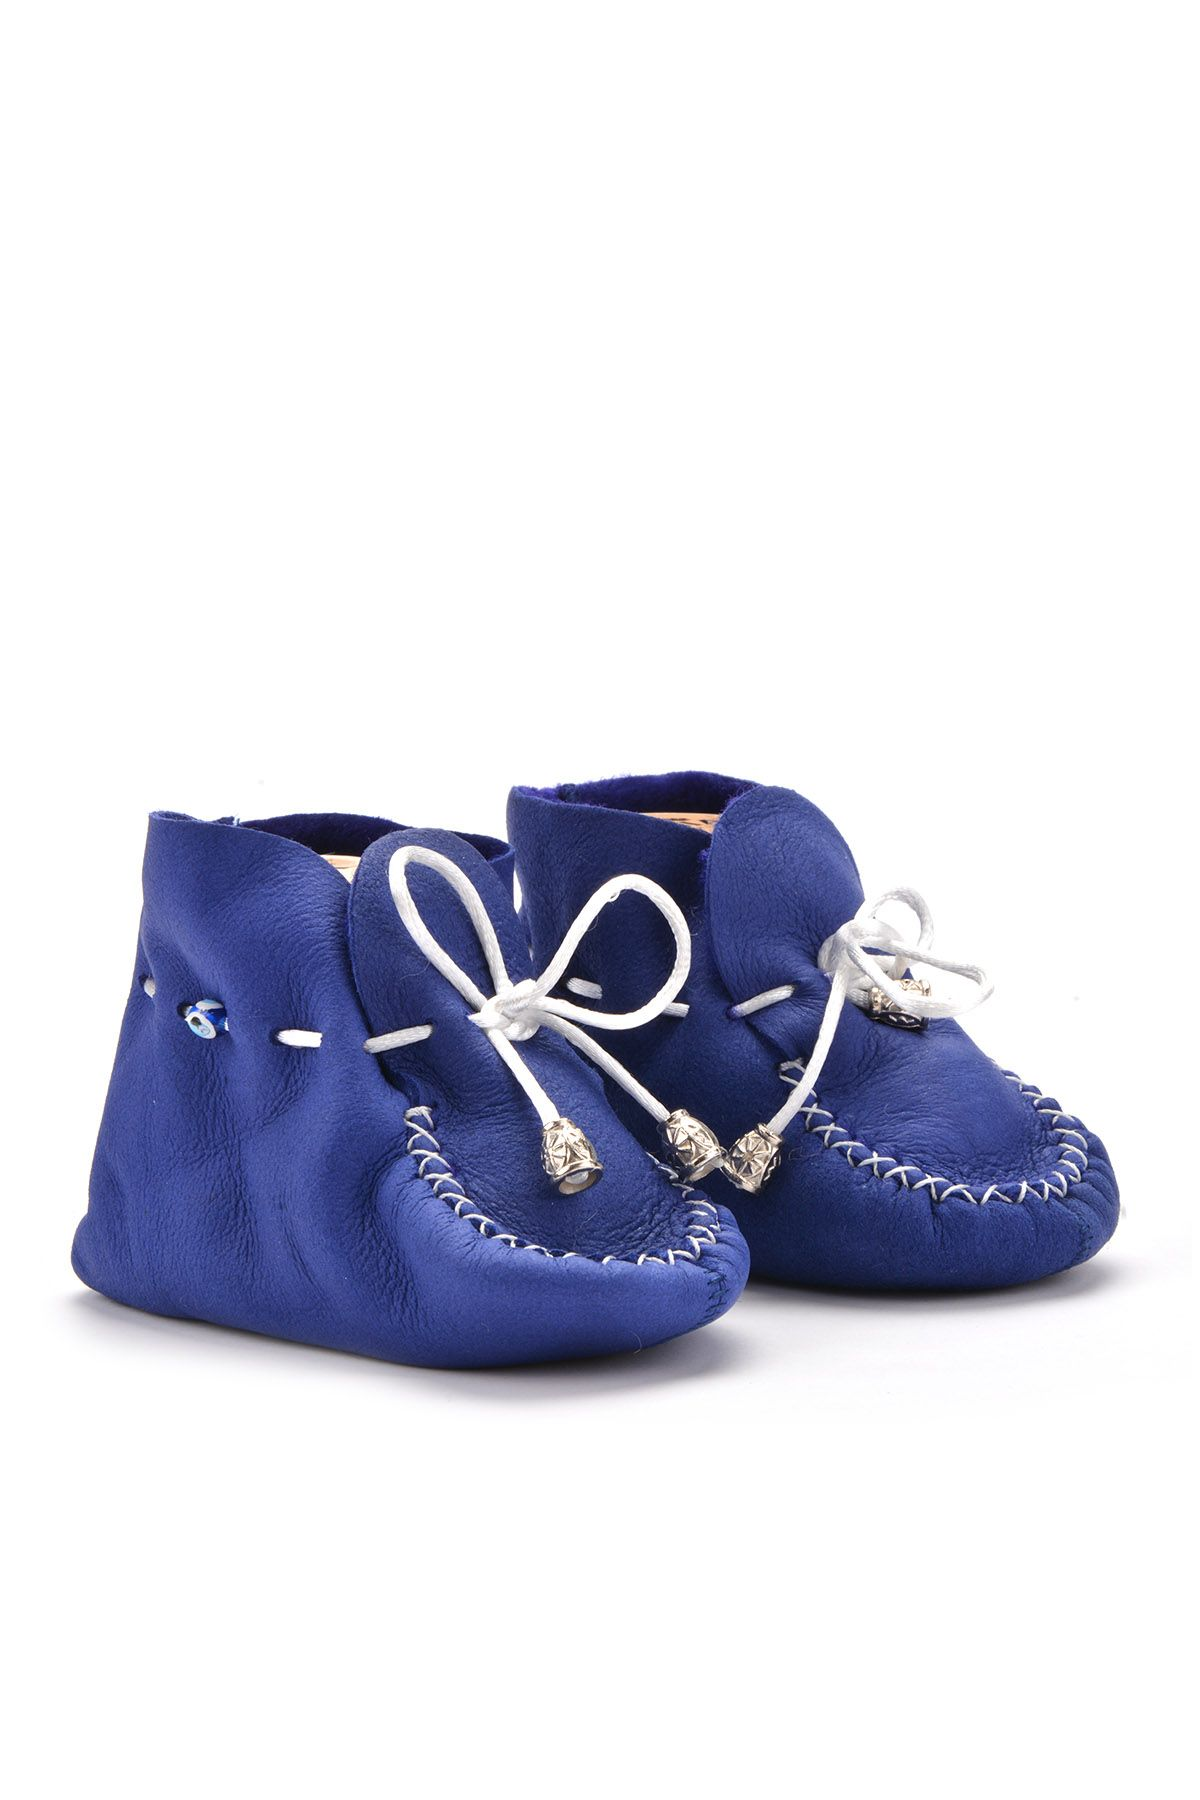 Pegia Laced Kids Booties From Genuine Fur Indigo-blue